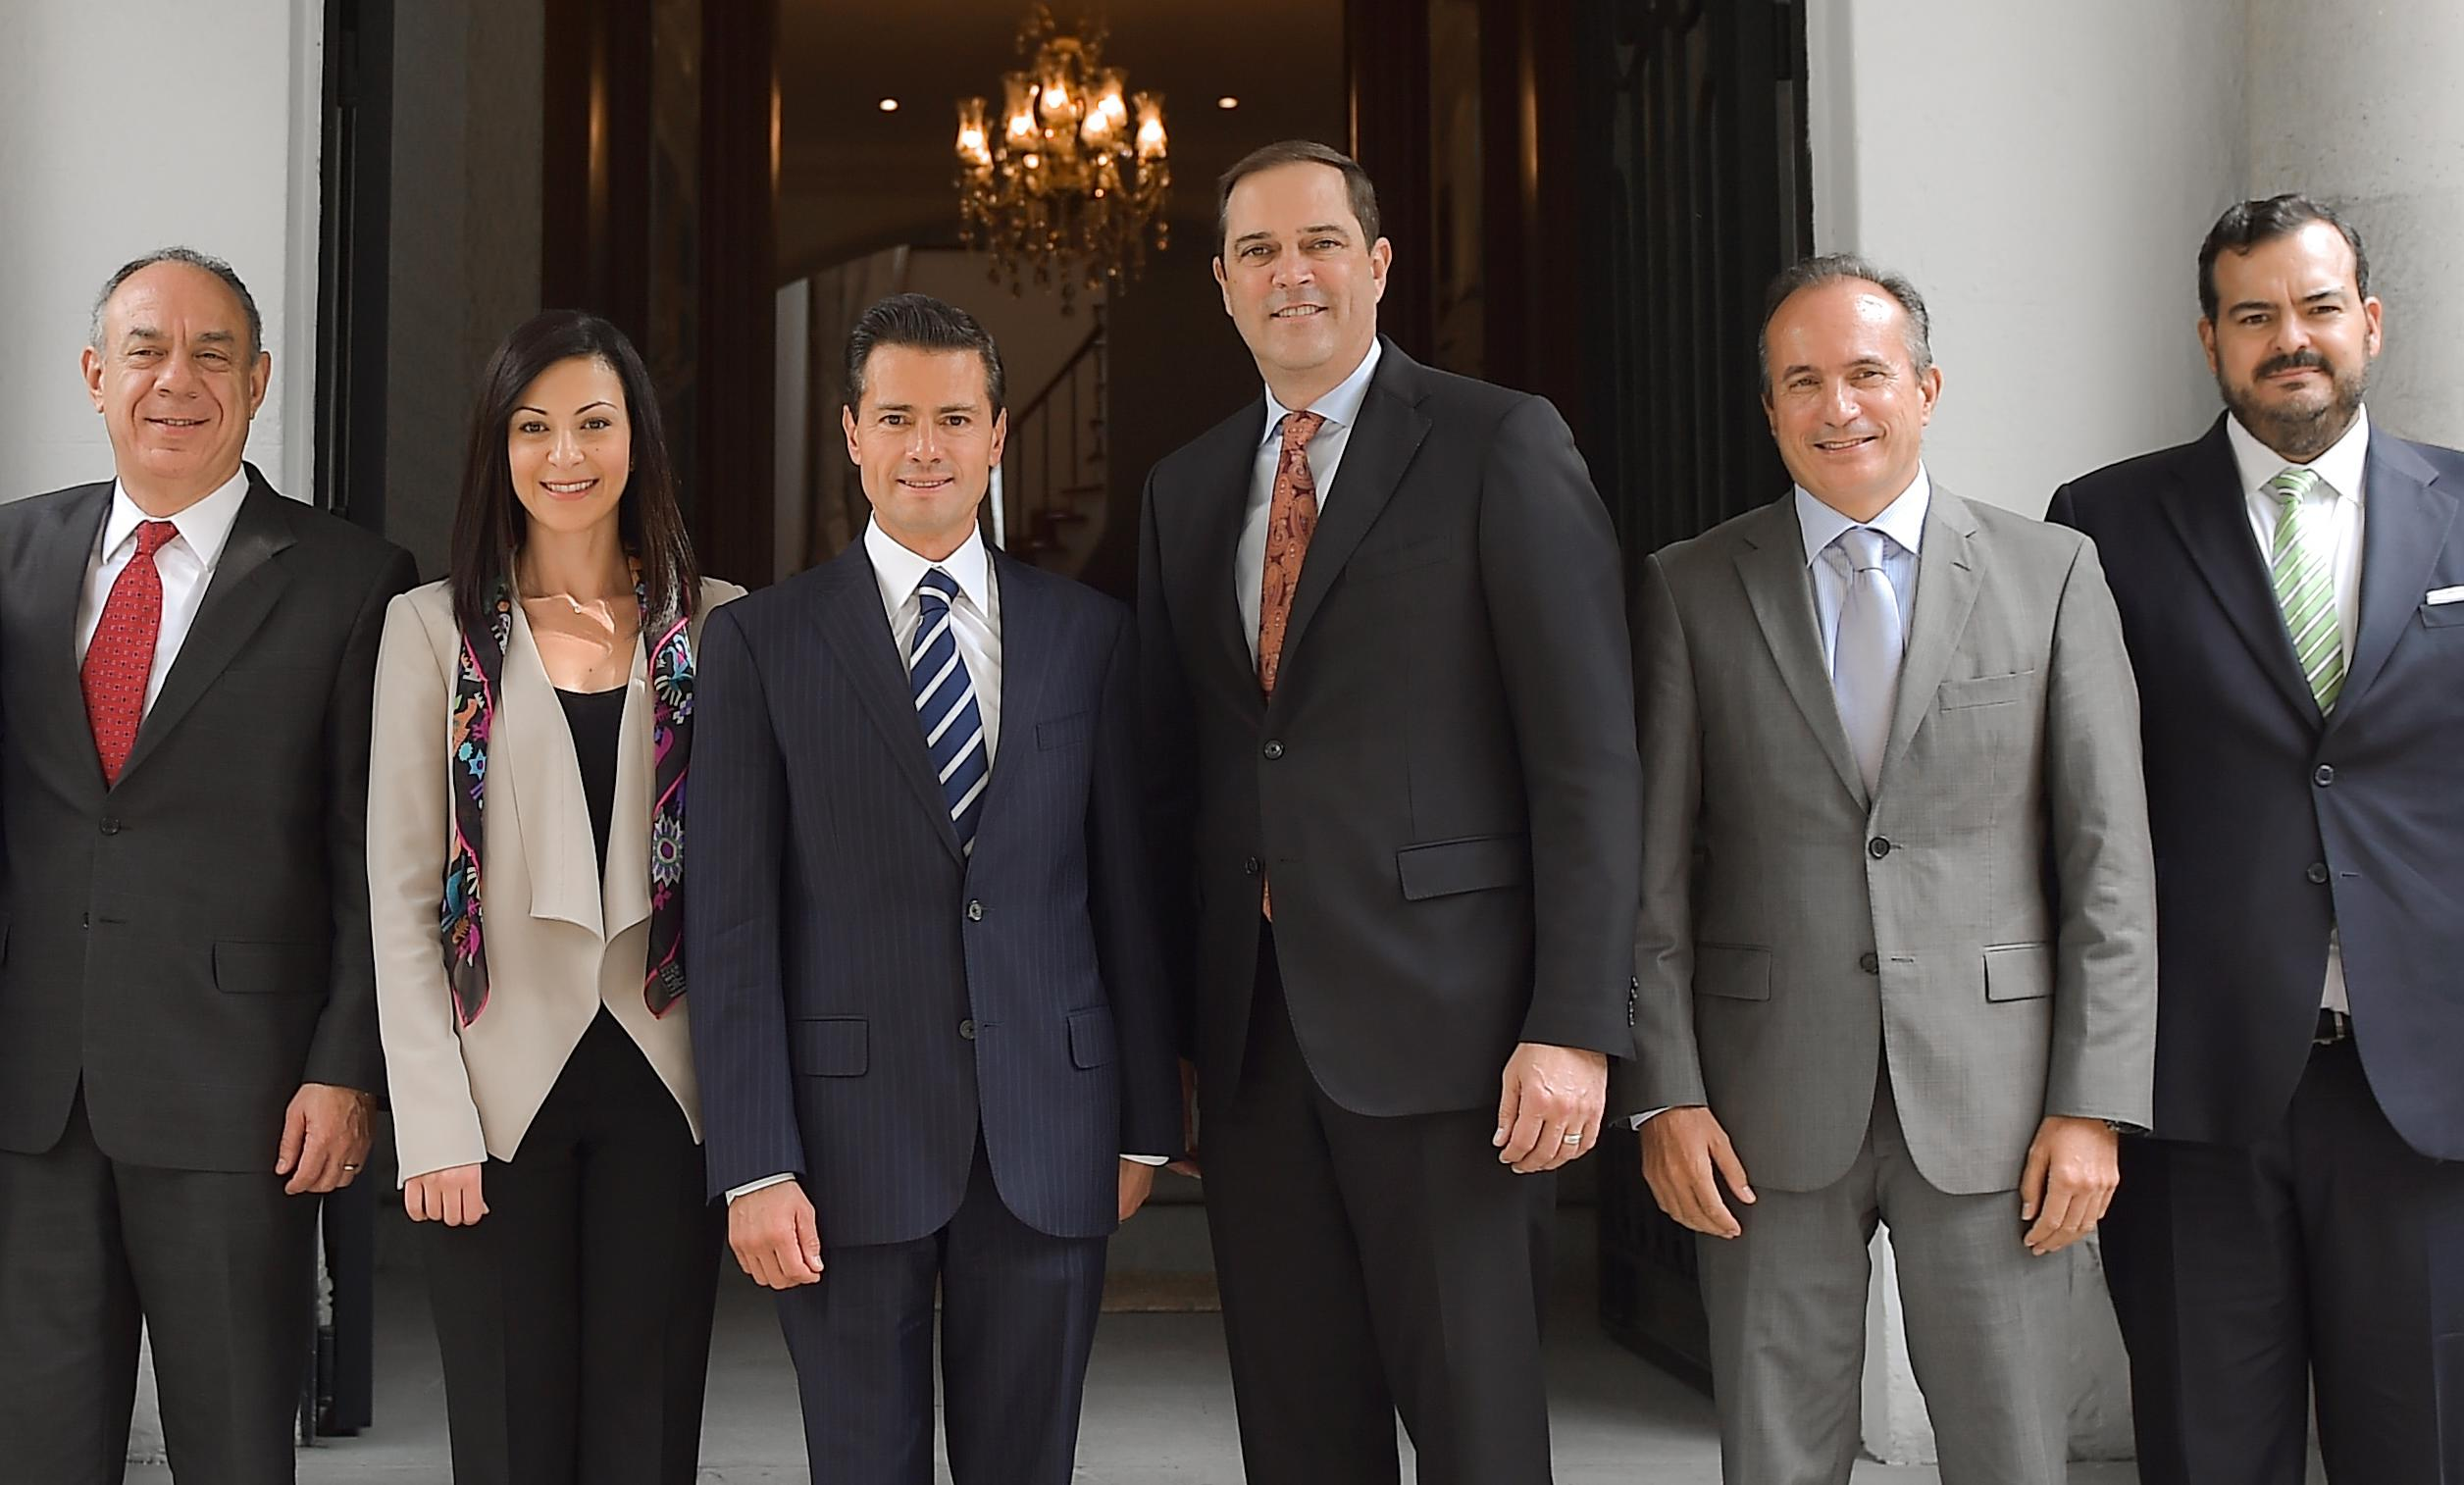 At the meeting, President Peña Nieto congratulated Cisco, and repeated his commitment to continuing to promote a suitable environment for investment and job creation in Mexico.